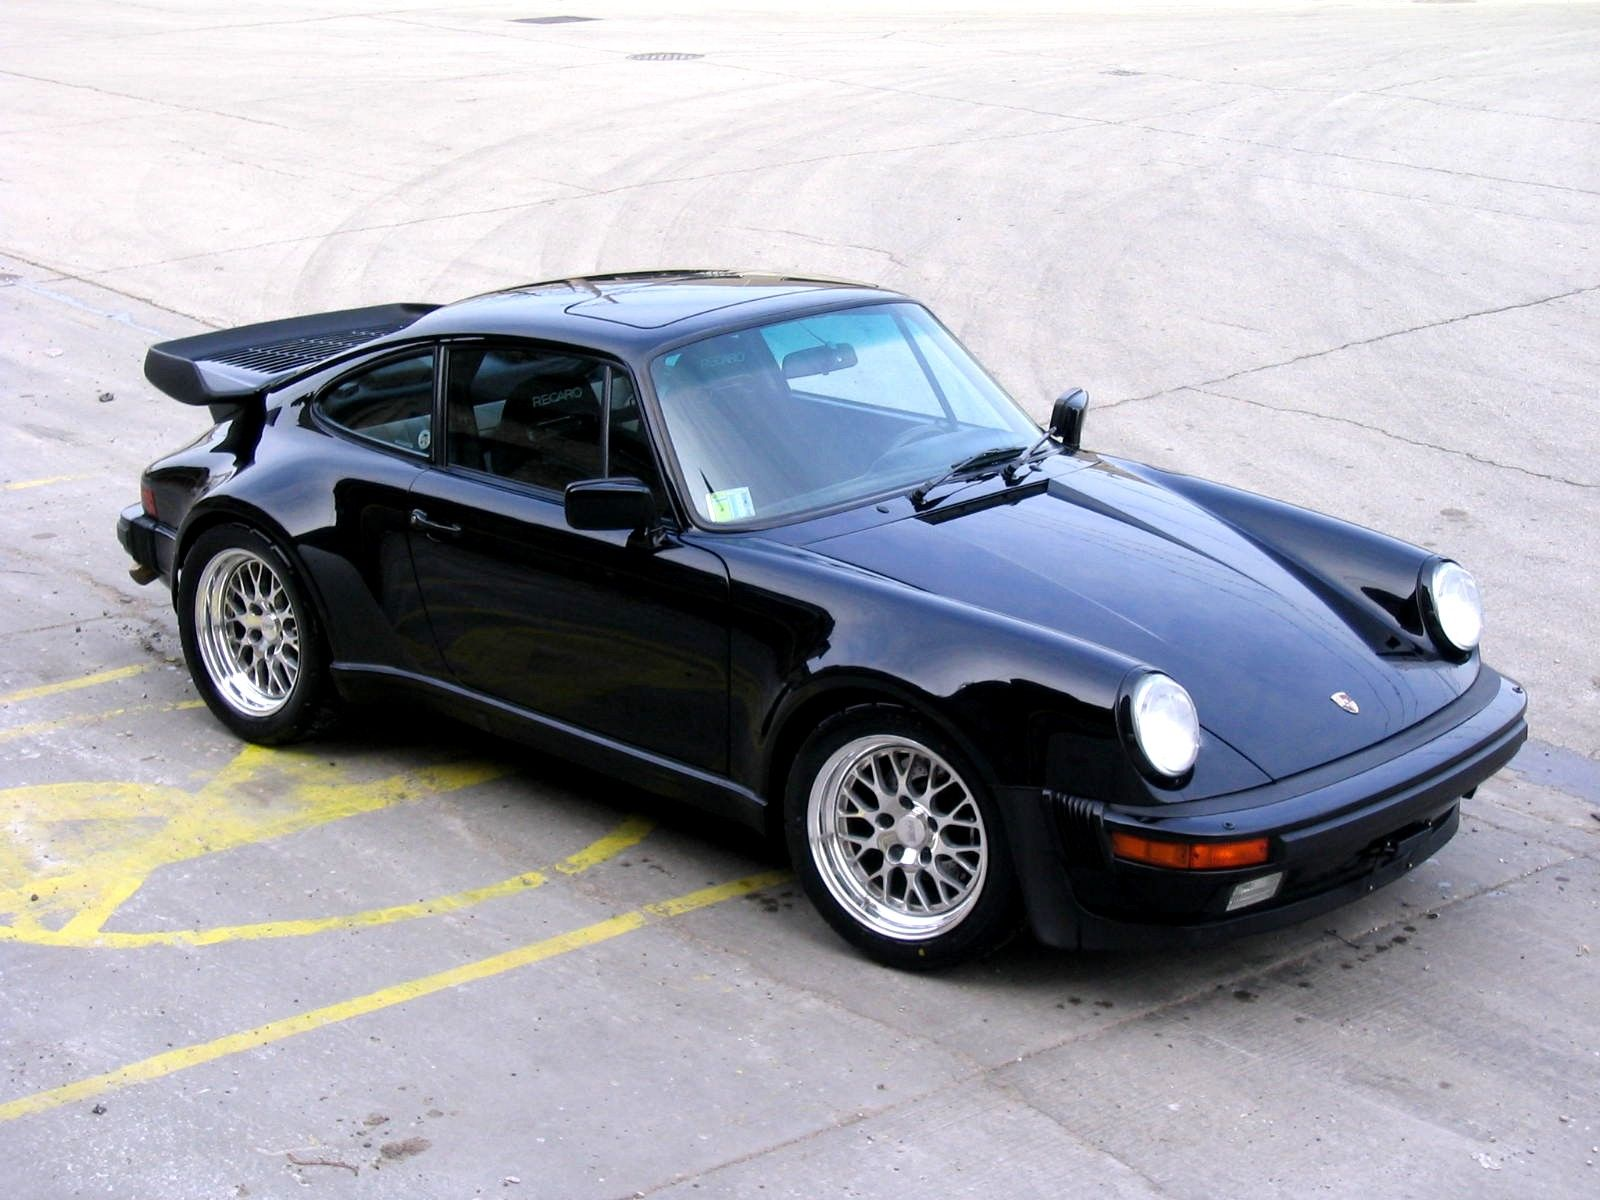 Porsche 911 Turbo . My Dad had one of these once upon a time.... It was sooo much fun!